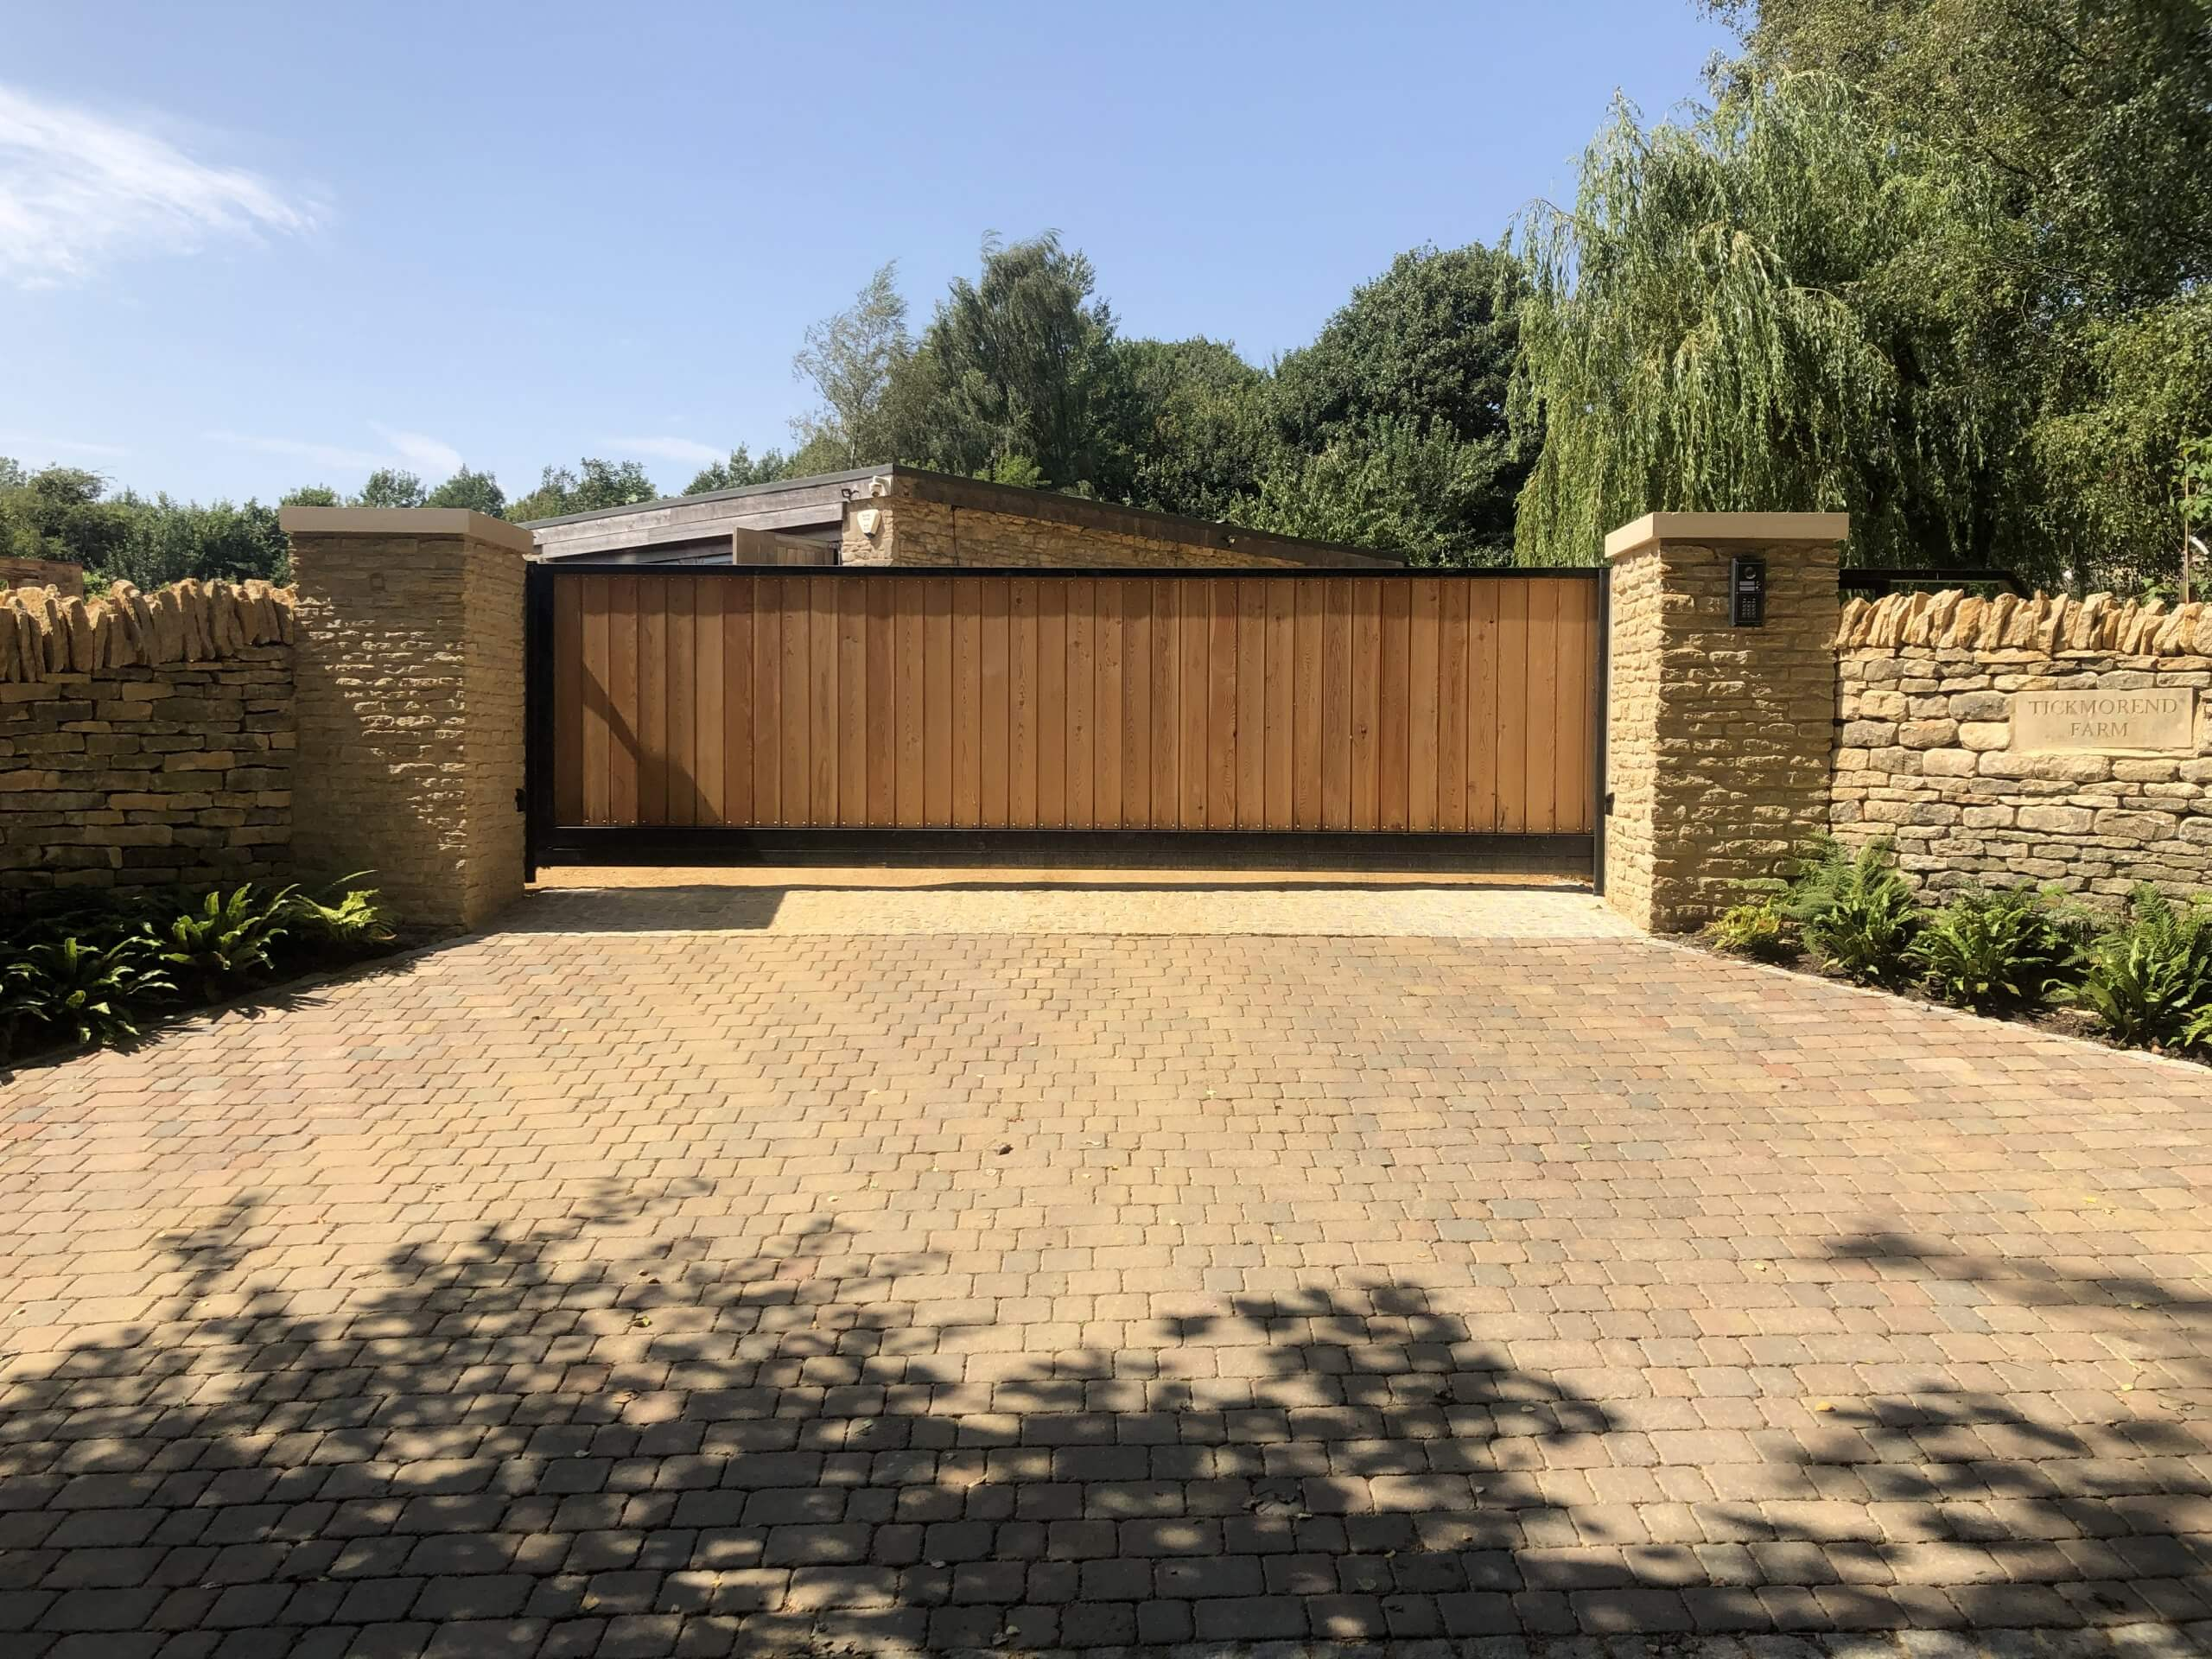 Stone Walling with Gate